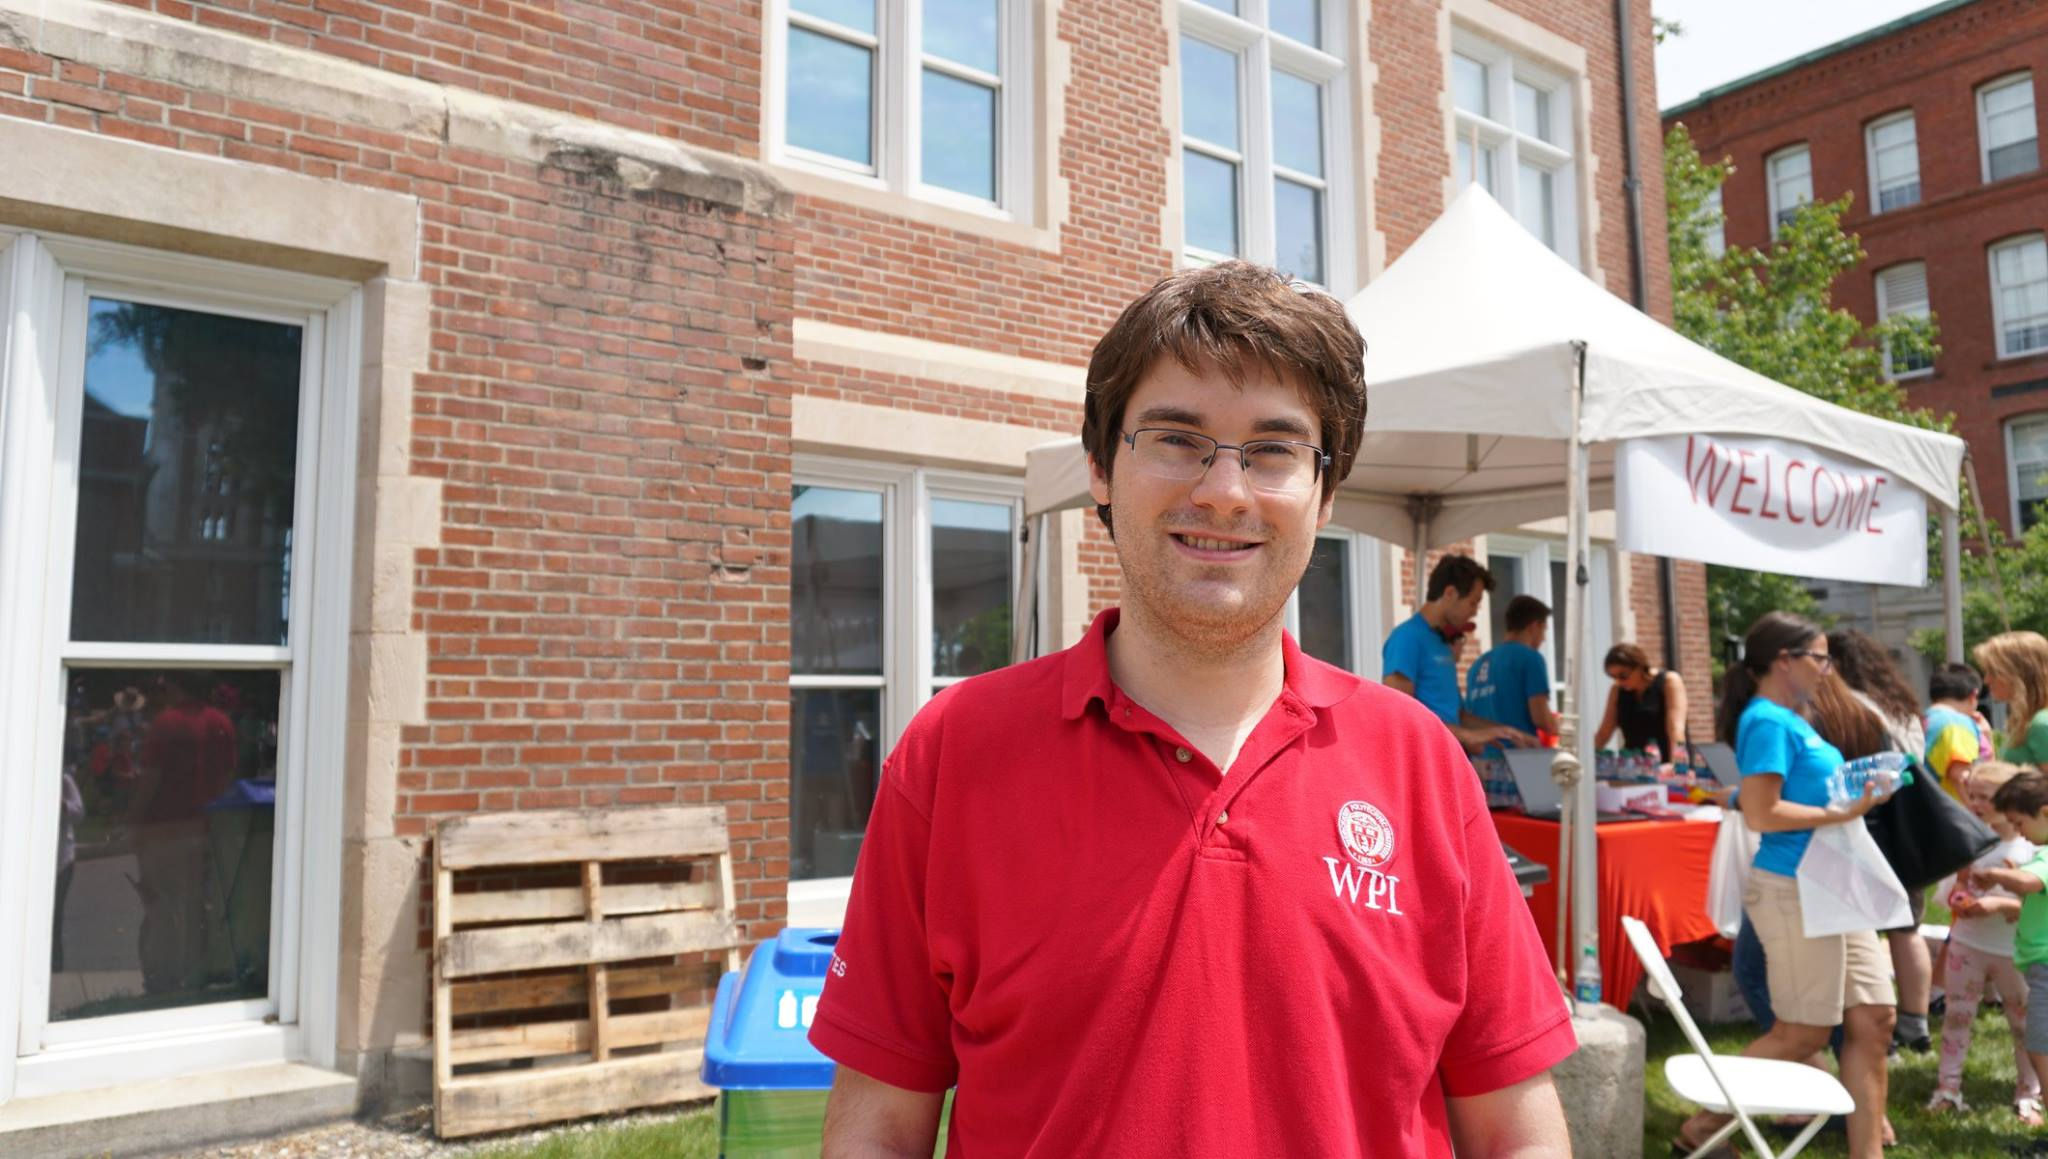 Nick Sloat stands in front of Higgins Lab. He's smiling and is wearing glasses and a red WPI polo shirt.